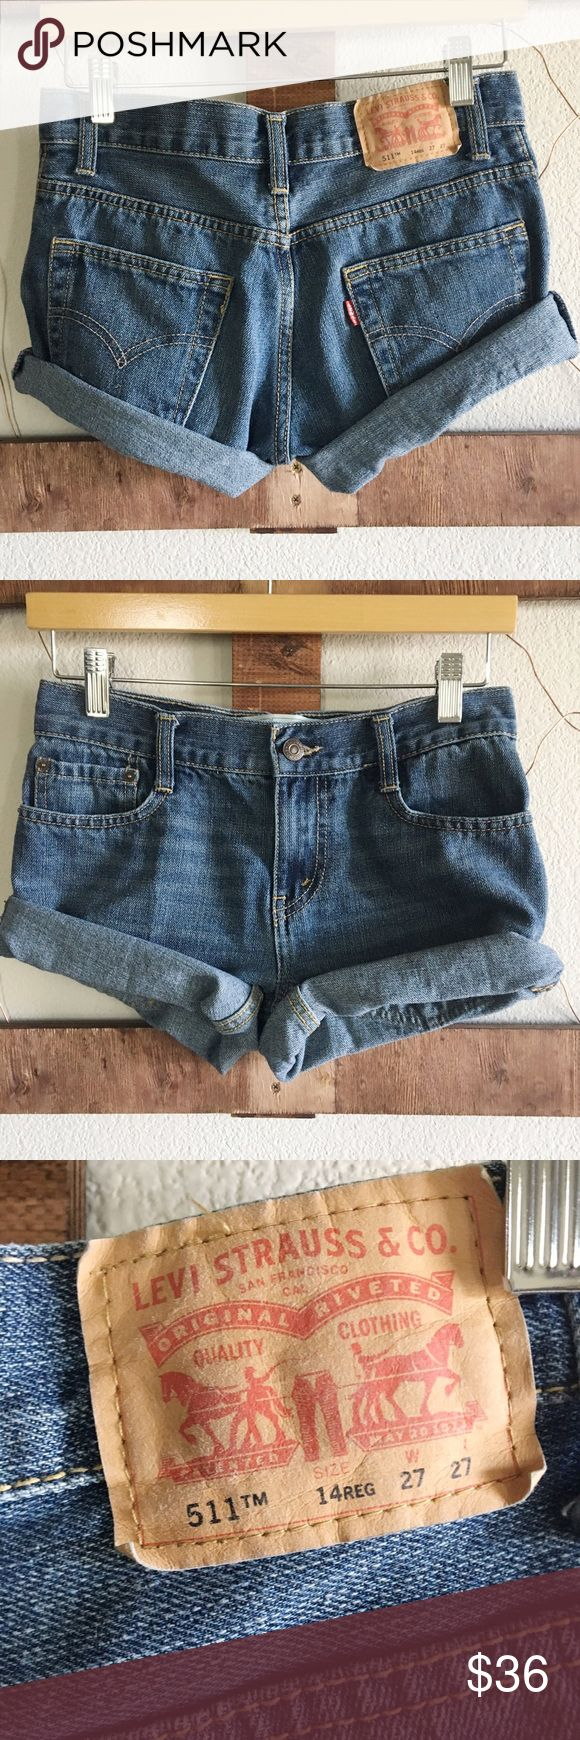 "511 Levi Jean Shorts🌵 511 Levi Jean Shorts🌱 medium wash; size 4 28"" waist, 32"" hips, 9"" length, 9.5"" rise, hand cutt not darted so you can adjust the cuff yourself✂️ Levi's Shorts Jean Shorts"